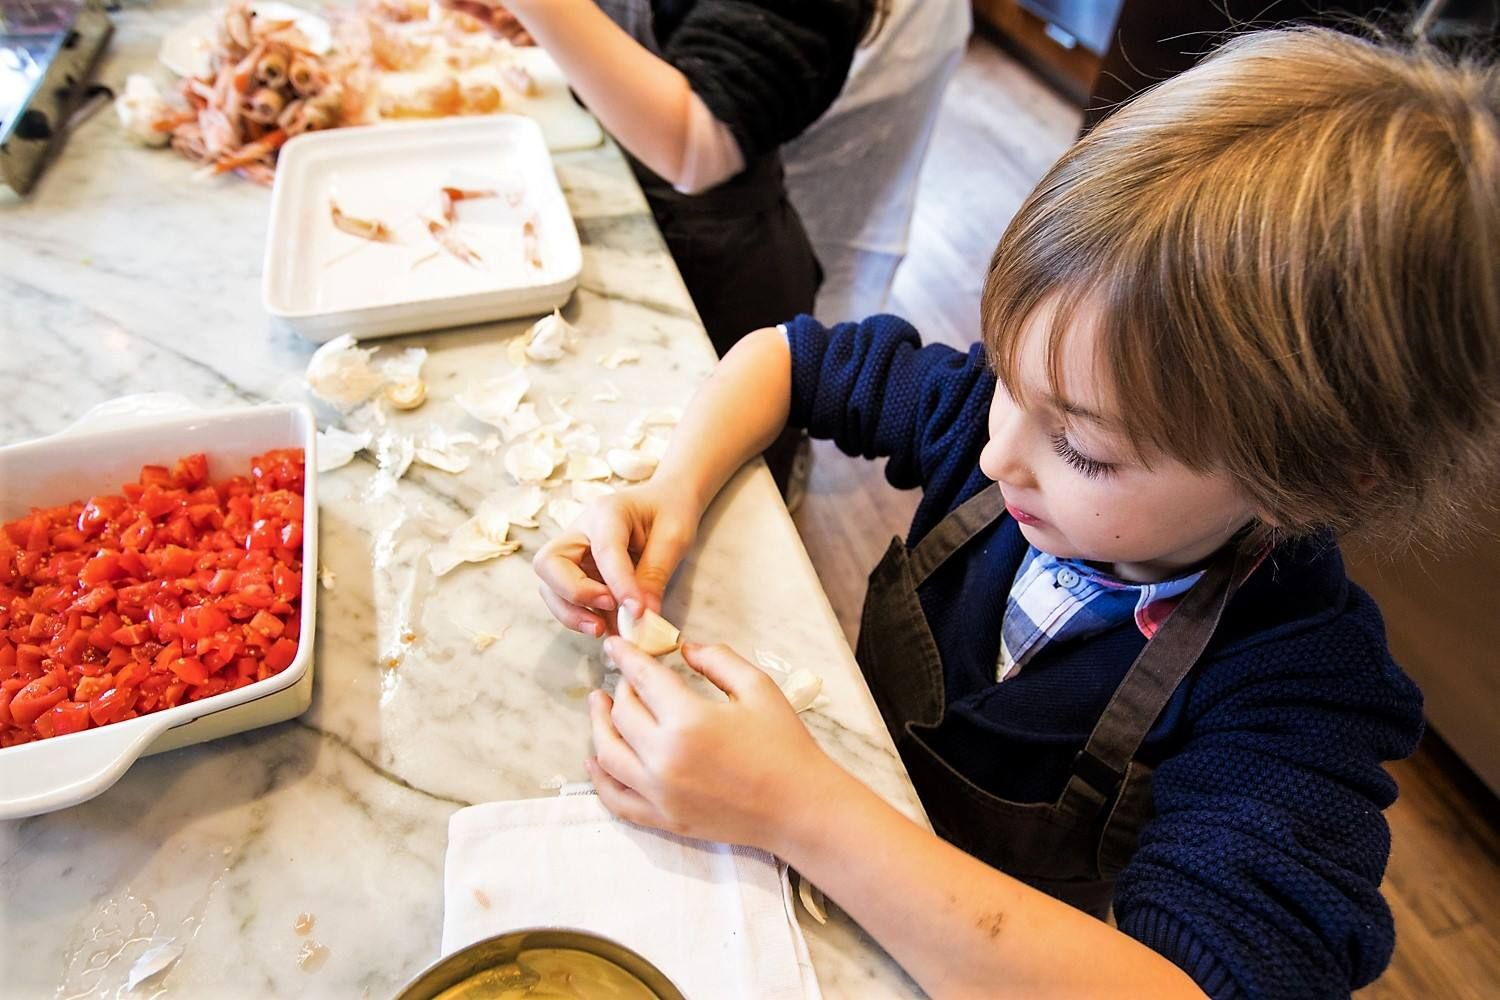 Cookingclass for children and adults will be hold by